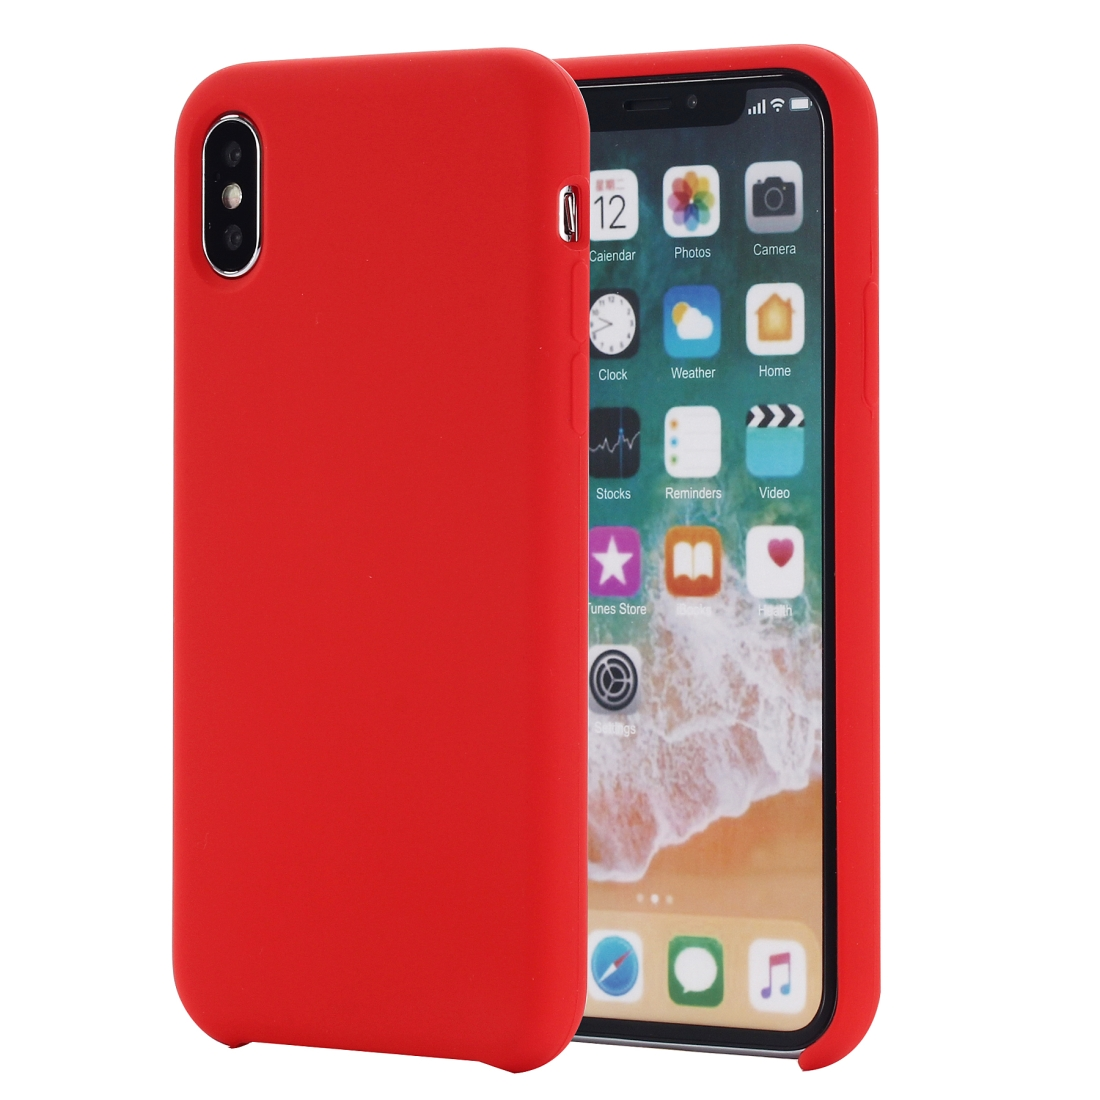 Four Corners Full Coverage Liquid Silicone Protective Case Back Cover for iPhone XS Max 6.5 inch (Red)